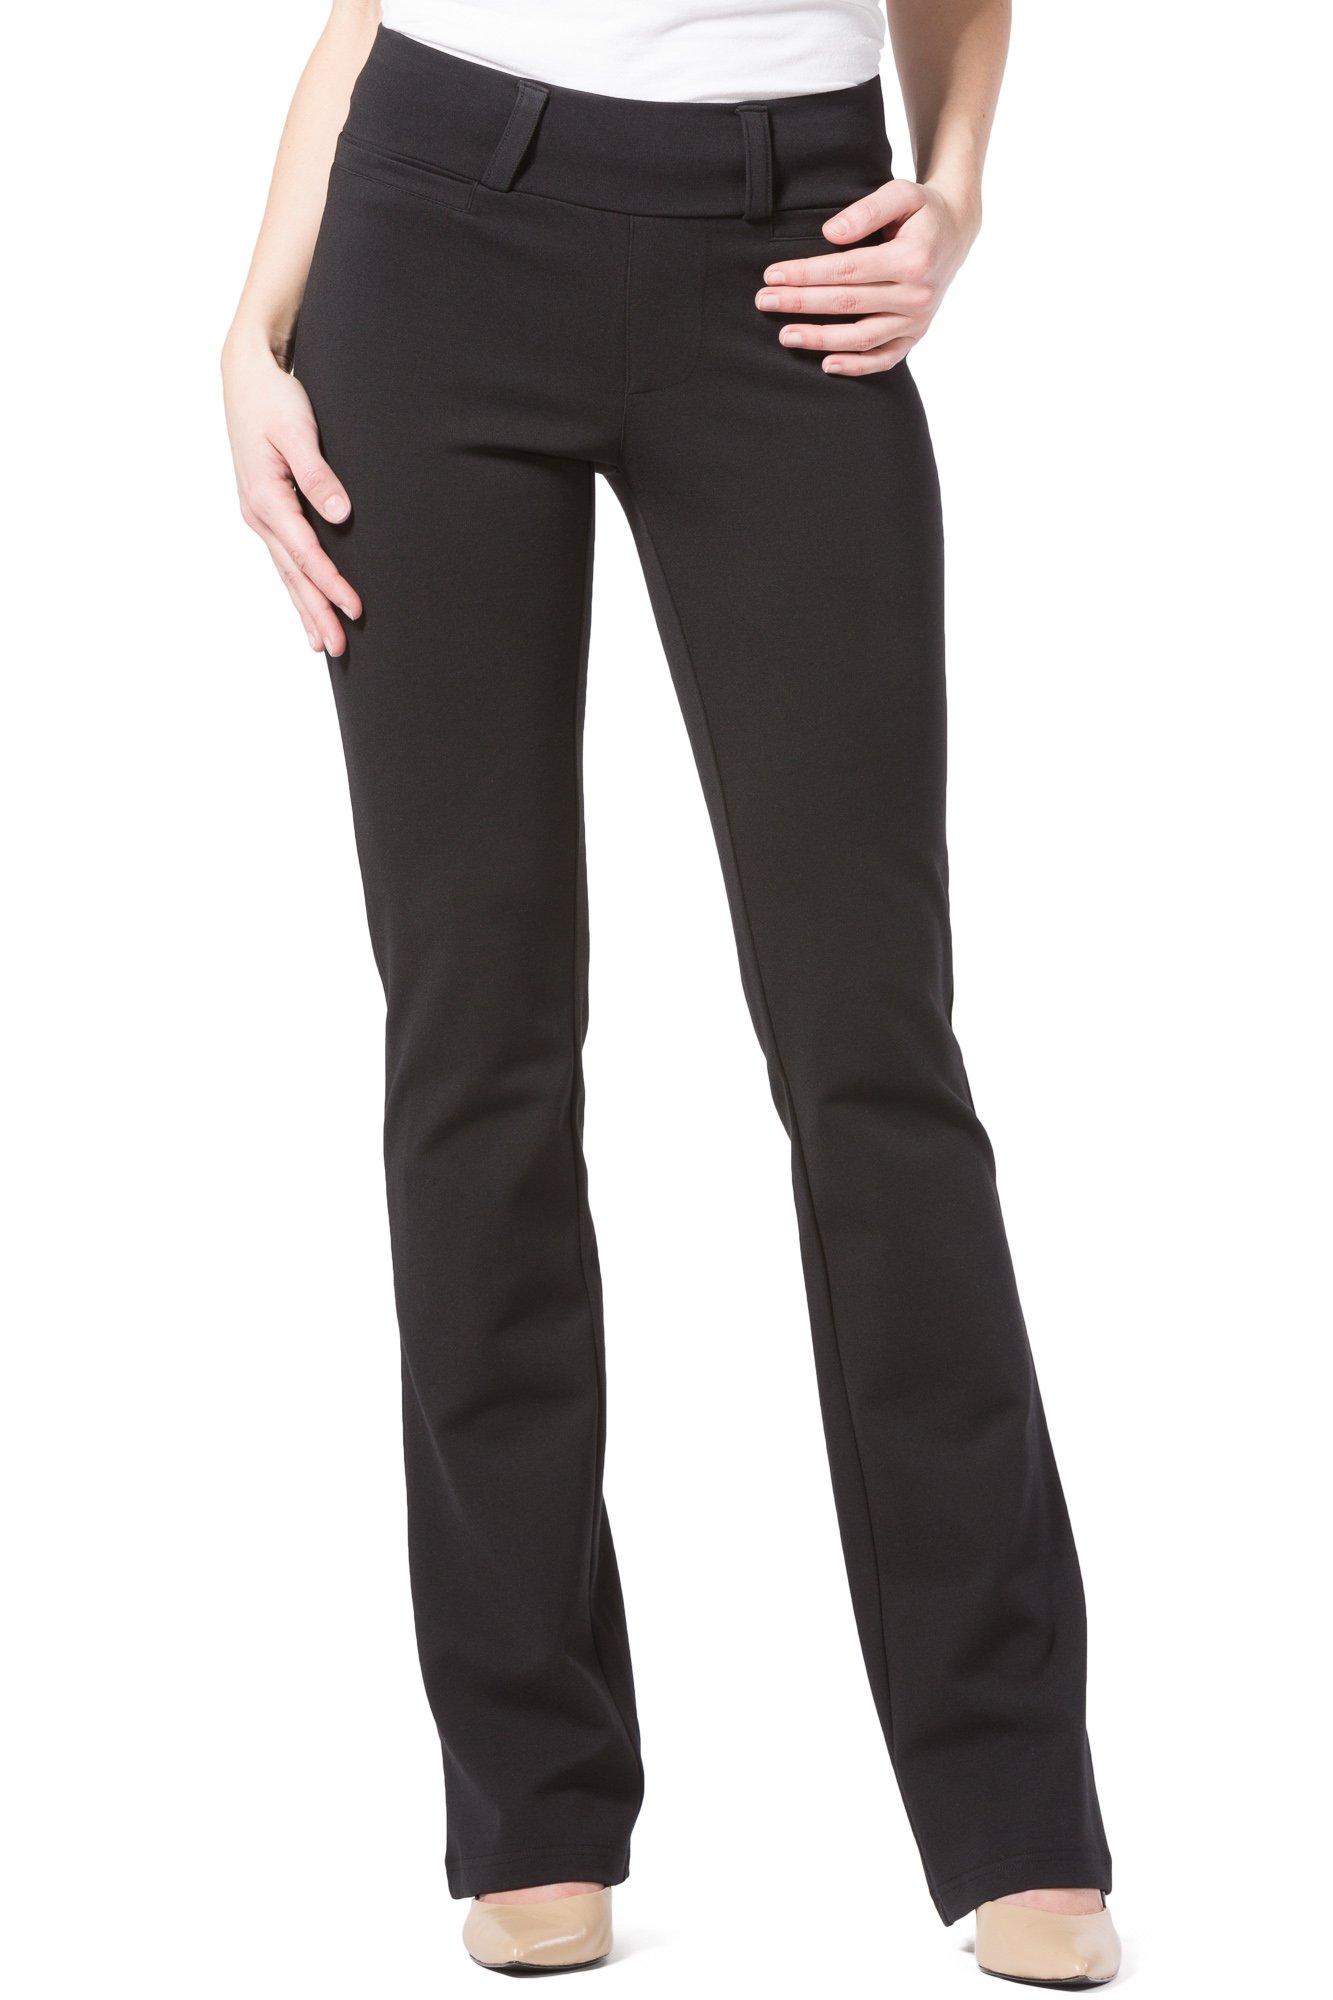 Fishers Finery Women's Ponte Boot Leg Dress Pant; Pull On (Black, M Petite) by Fishers Finery (Image #5)